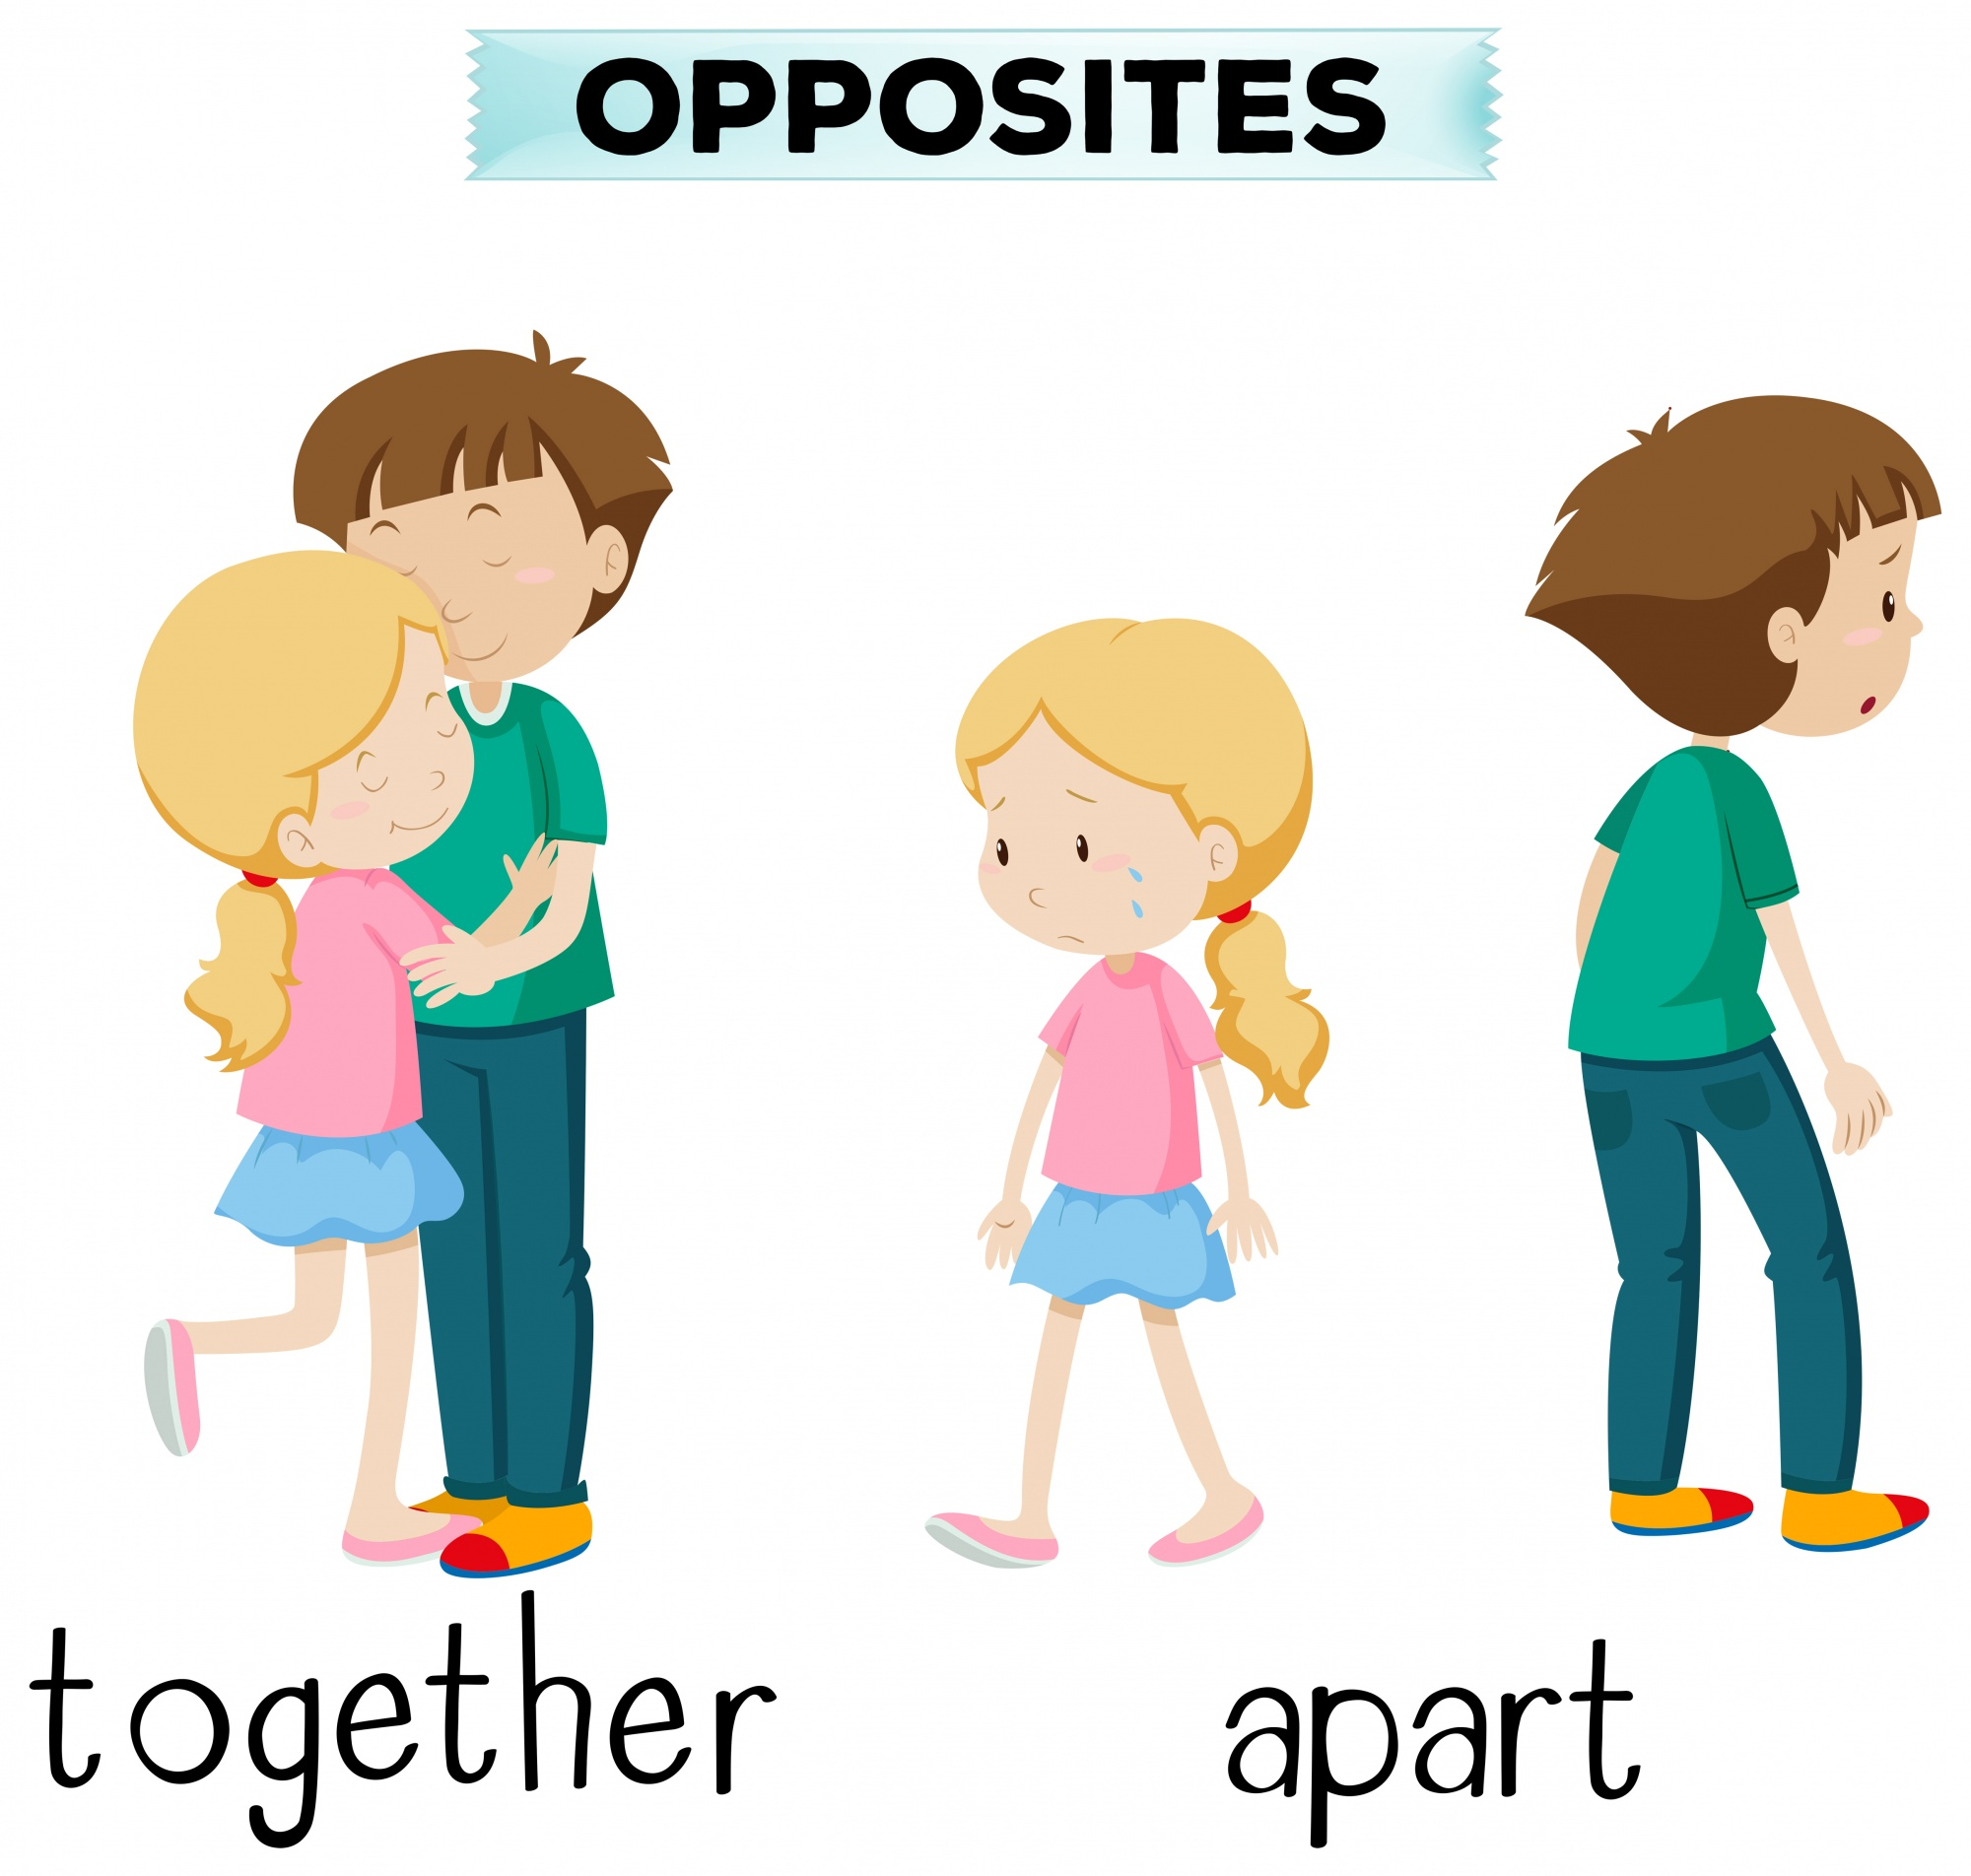 Opposite words for together and apart